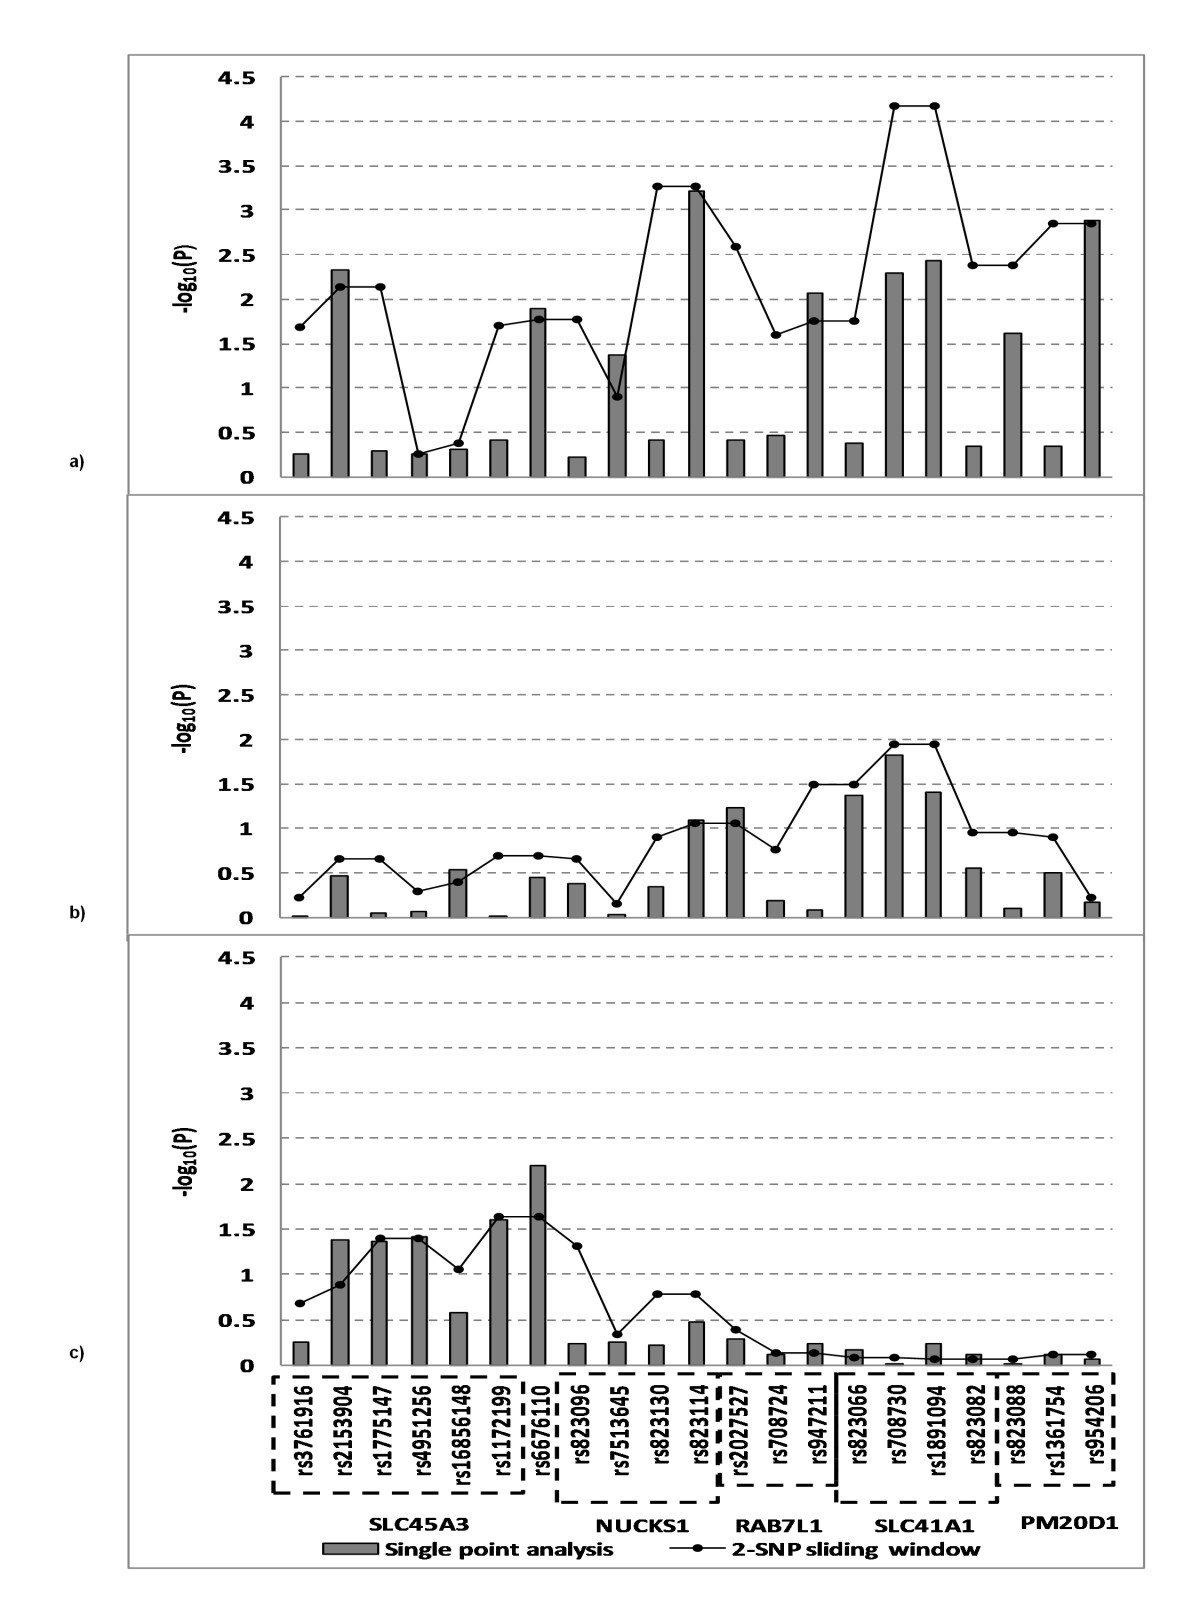 https://static-content.springer.com/image/art%3A10.1186%2F1471-2350-12-104/MediaObjects/12881_2011_Article_839_Fig6_HTML.jpg